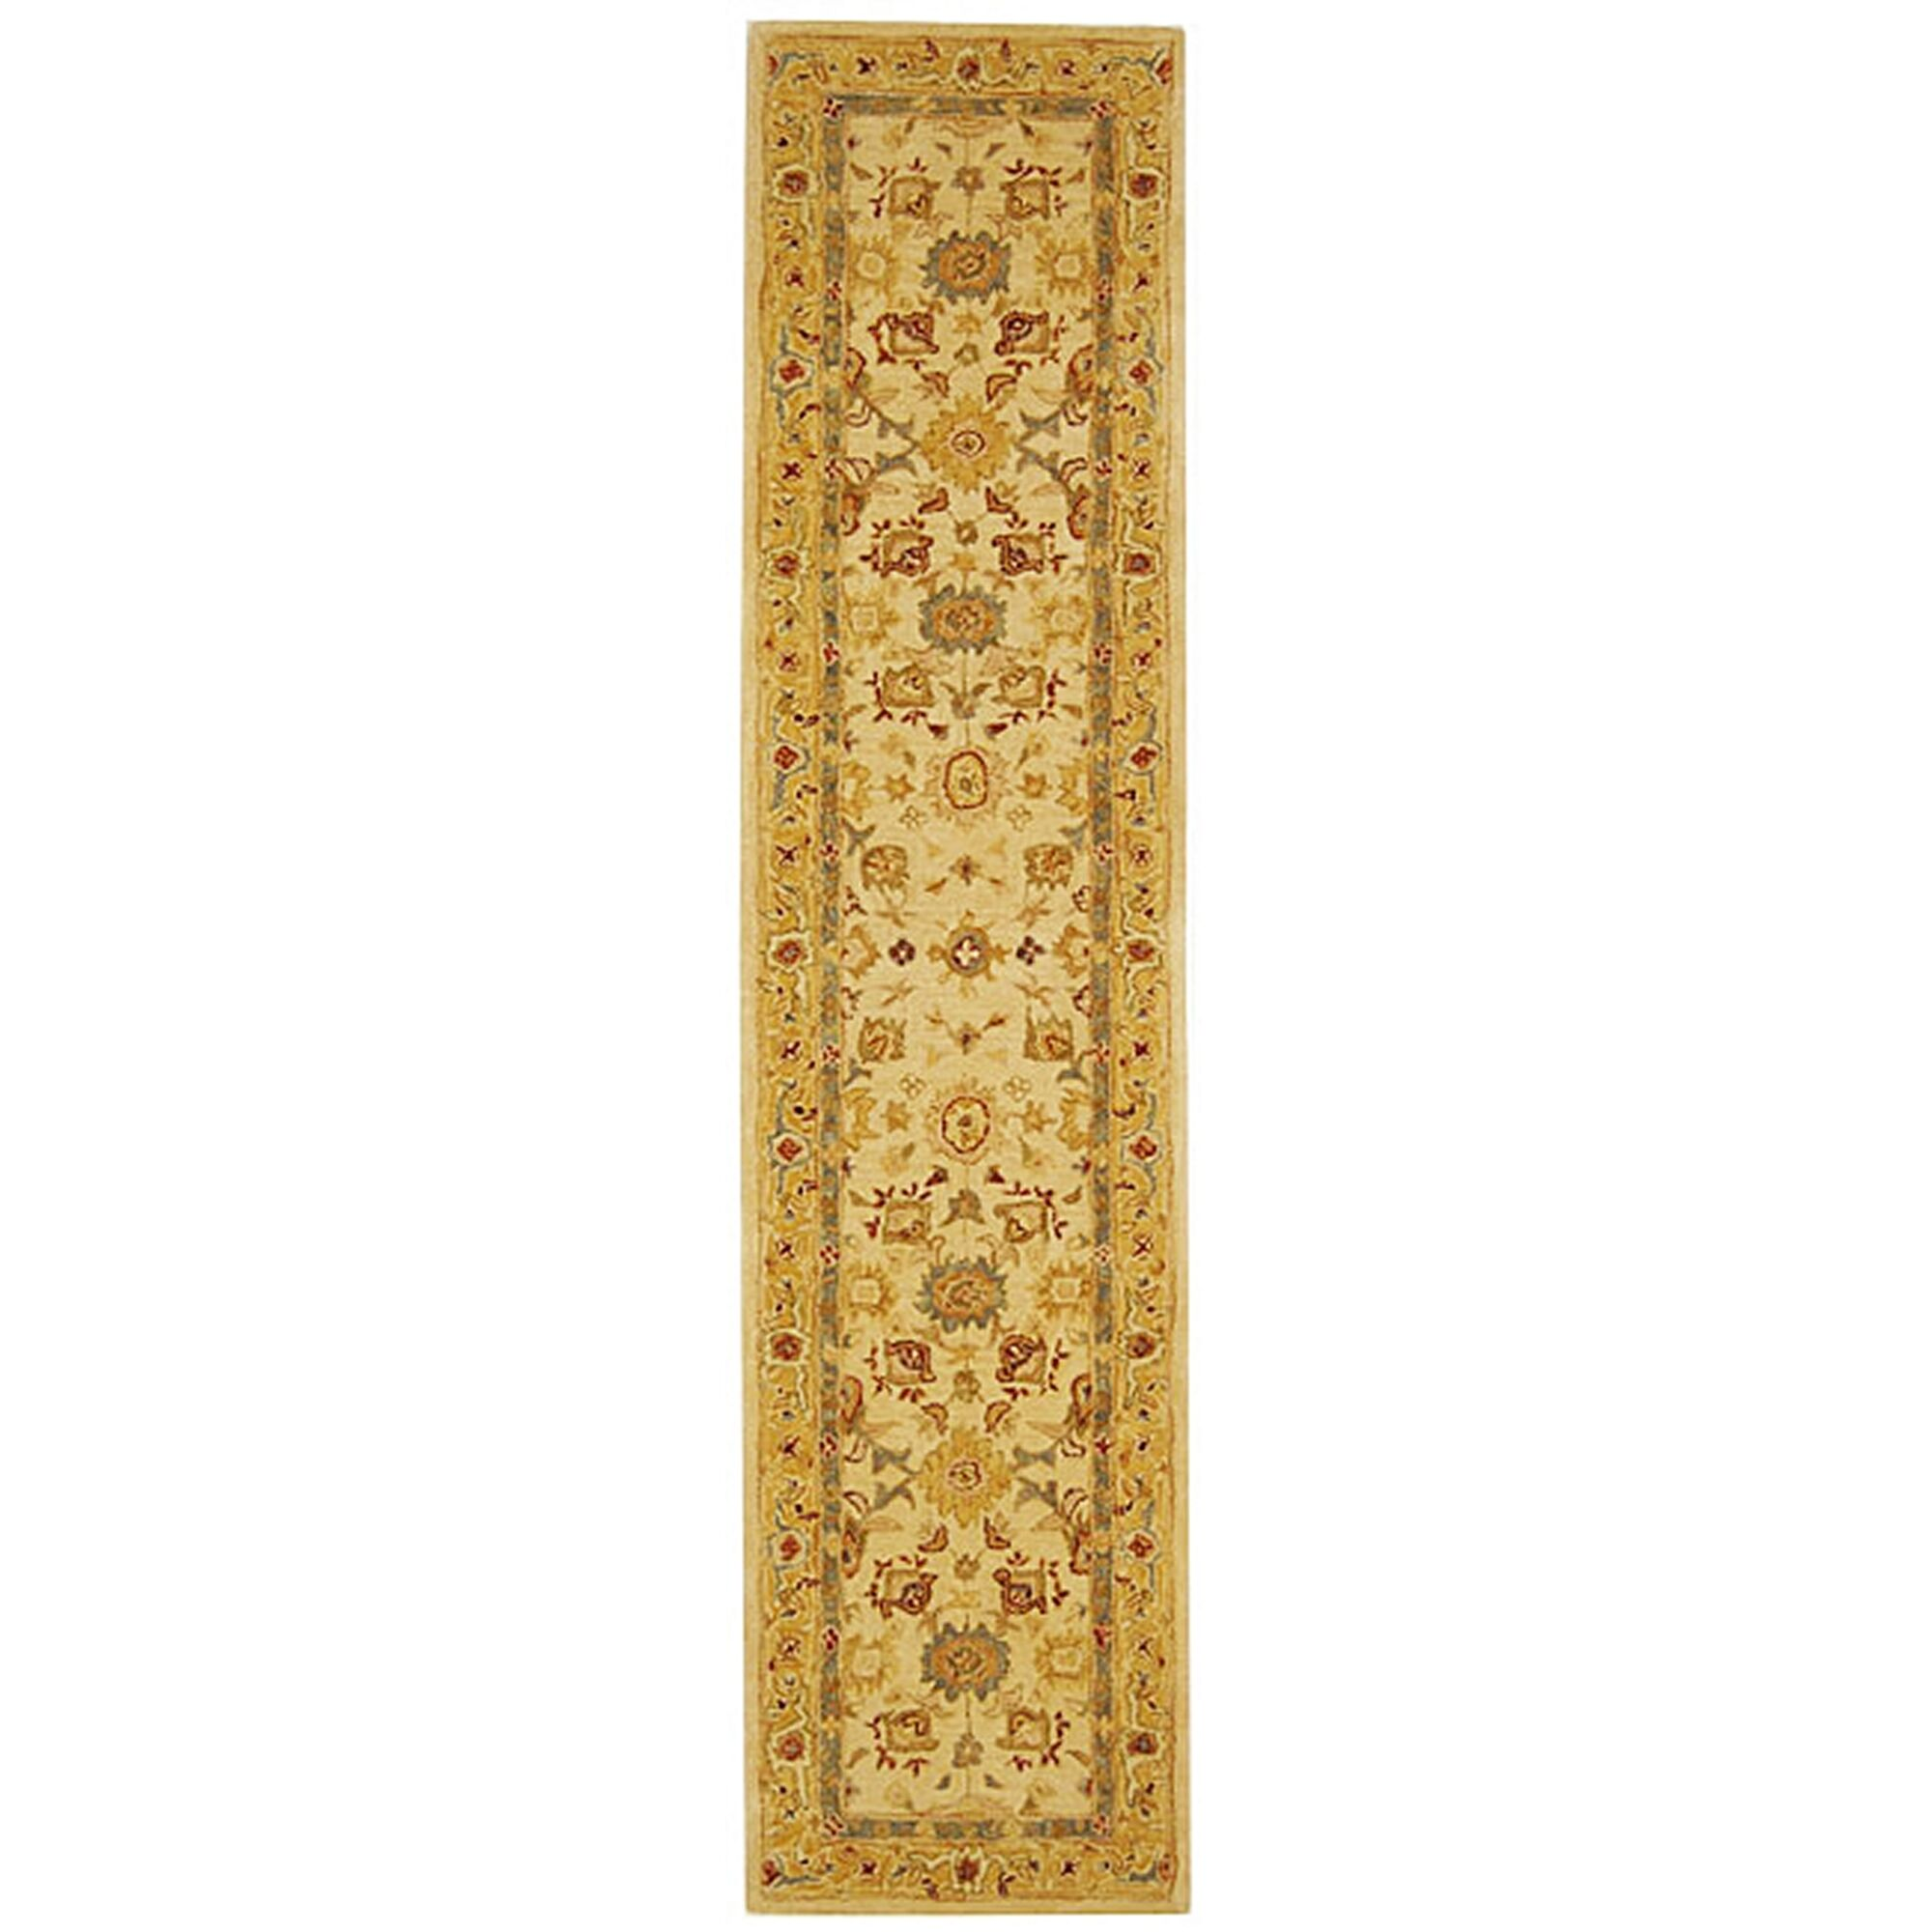 Pritchard Hand-Woven Wool Ivory/Gold Area Rug Rug Size: Runner 2'3